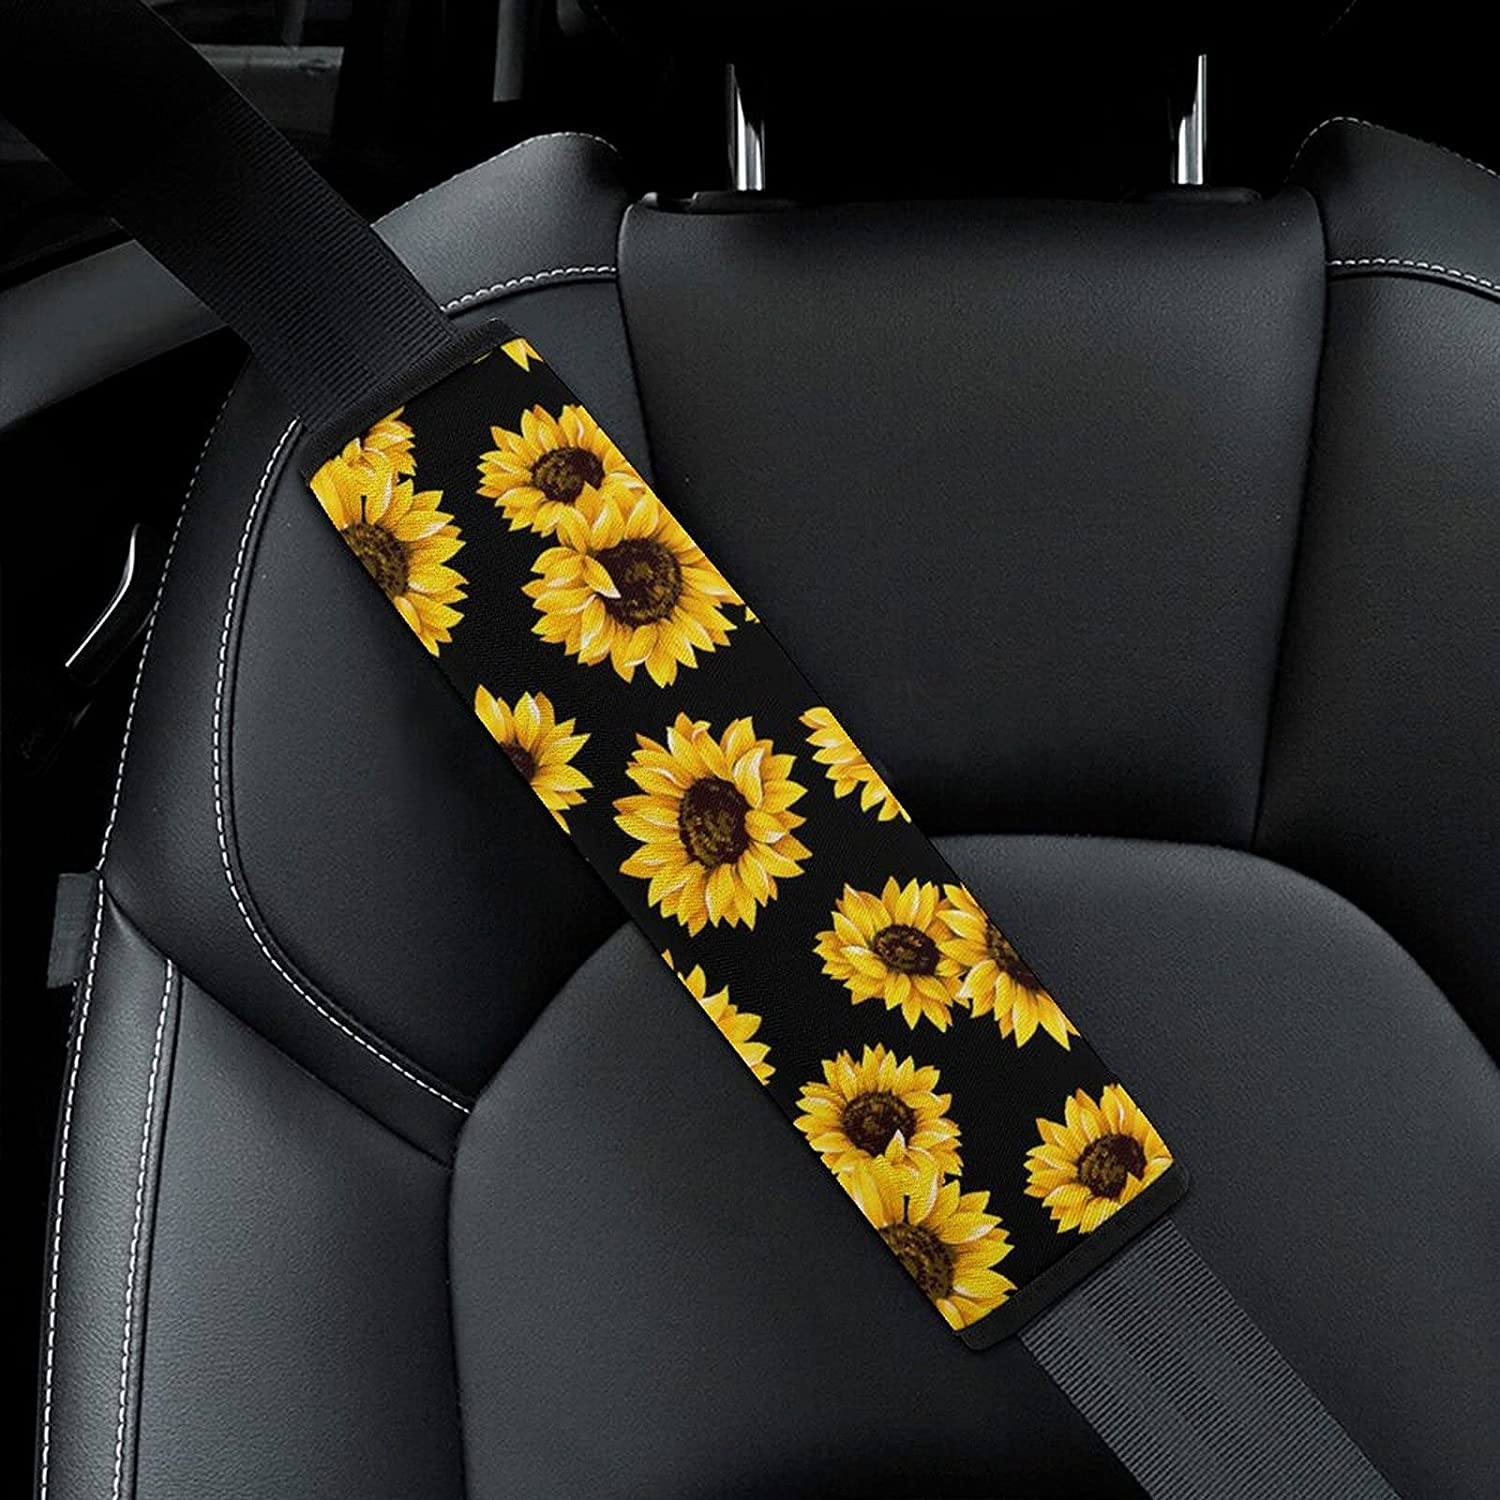 Oil New life Painting Sunflower Flowers Pattern with Car Black Large special price Se